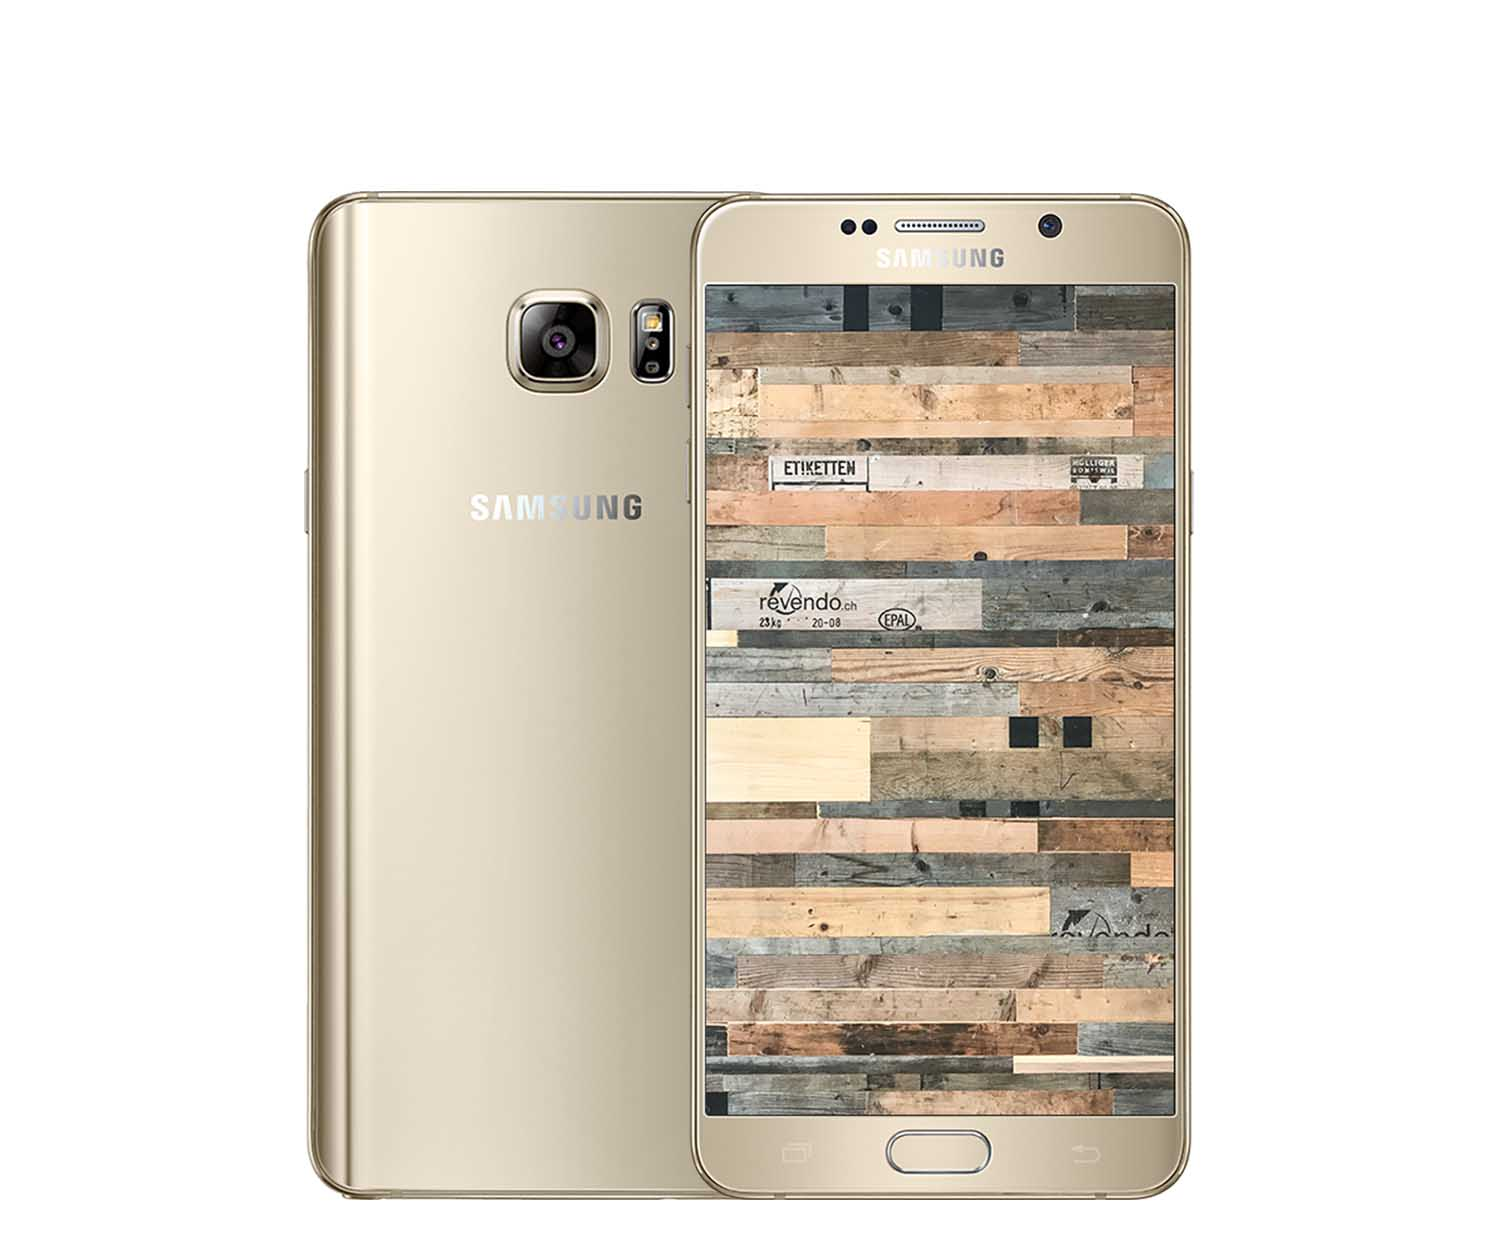 samsung galaxy s6 edge 32 gb gold platinum. Black Bedroom Furniture Sets. Home Design Ideas